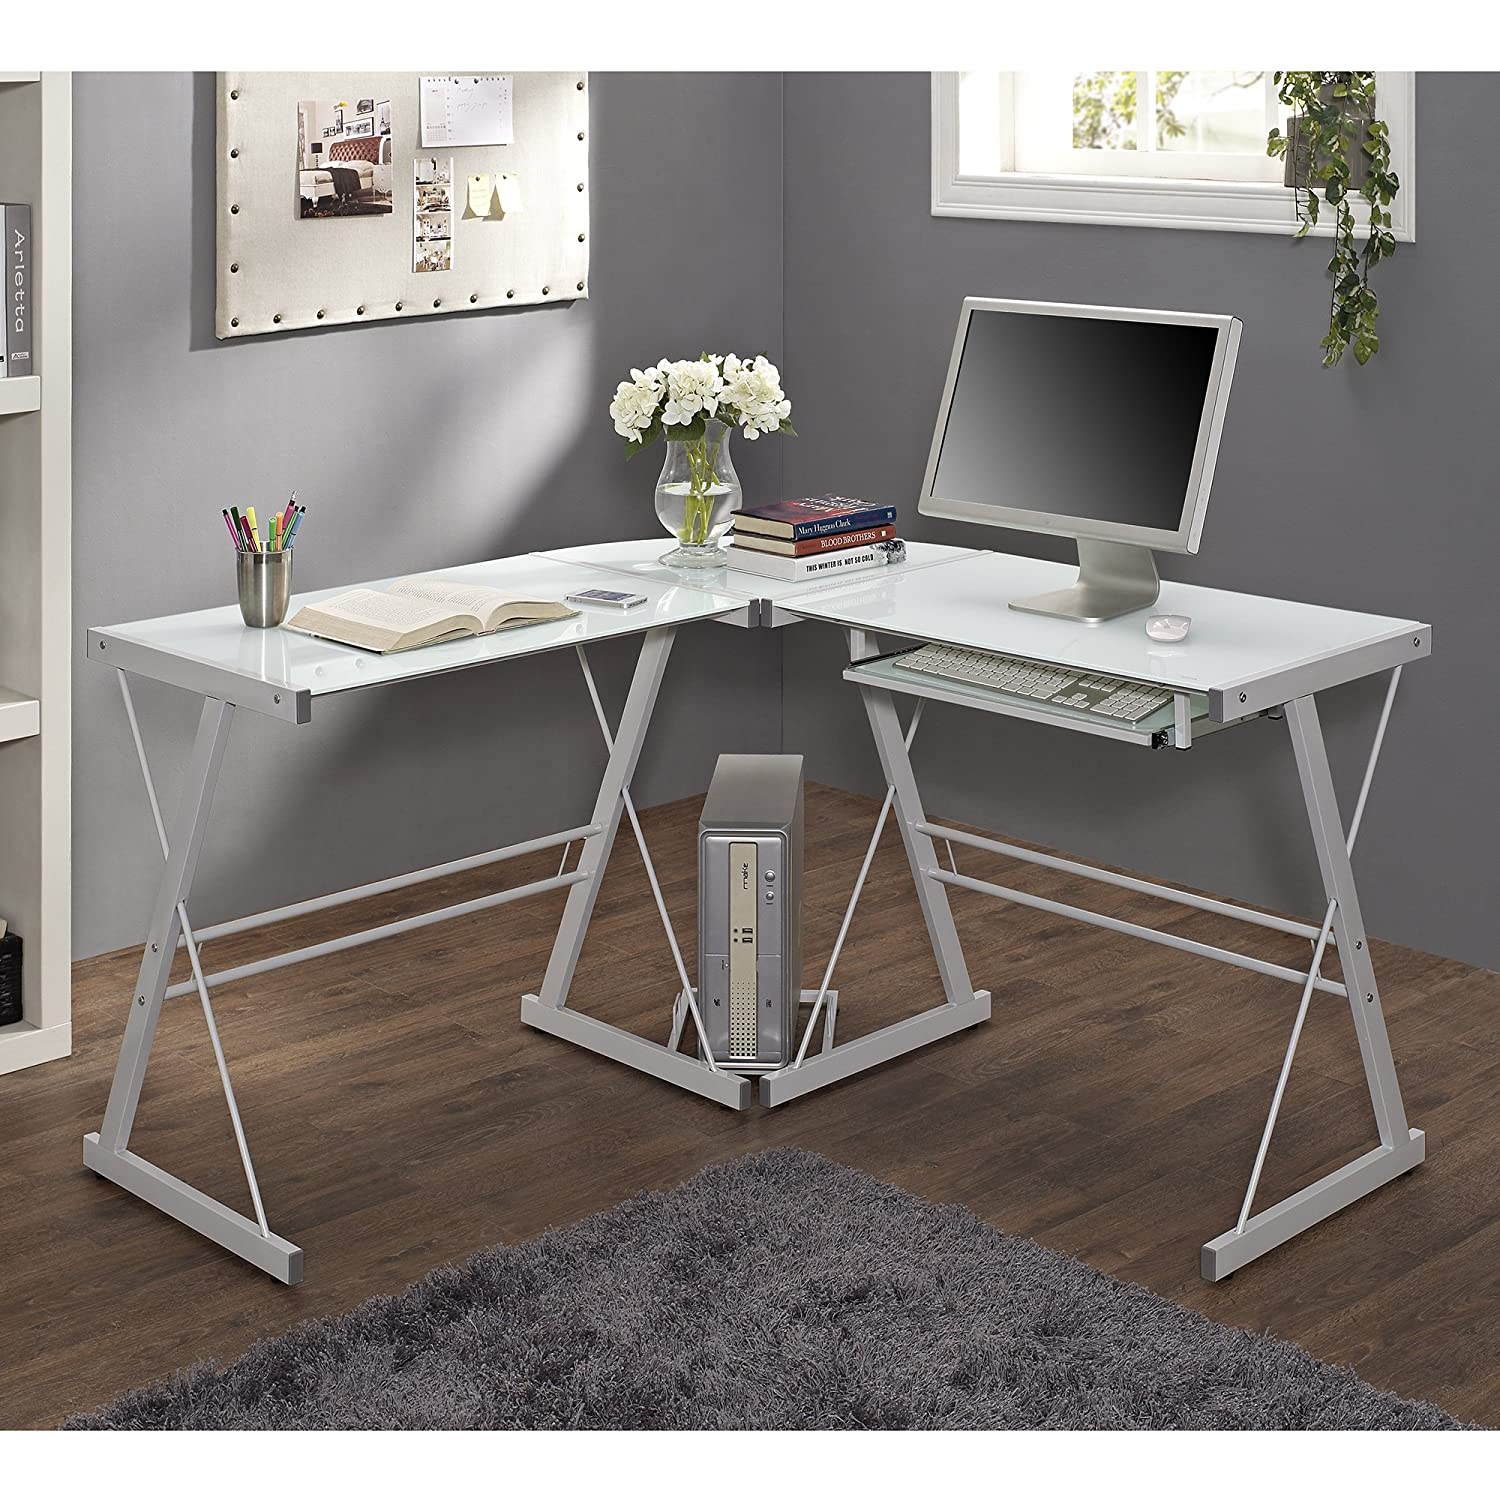 Amazon.com: WE Furniture Glass Metal Corner Computer Desk: Kitchen U0026 Dining Part 61